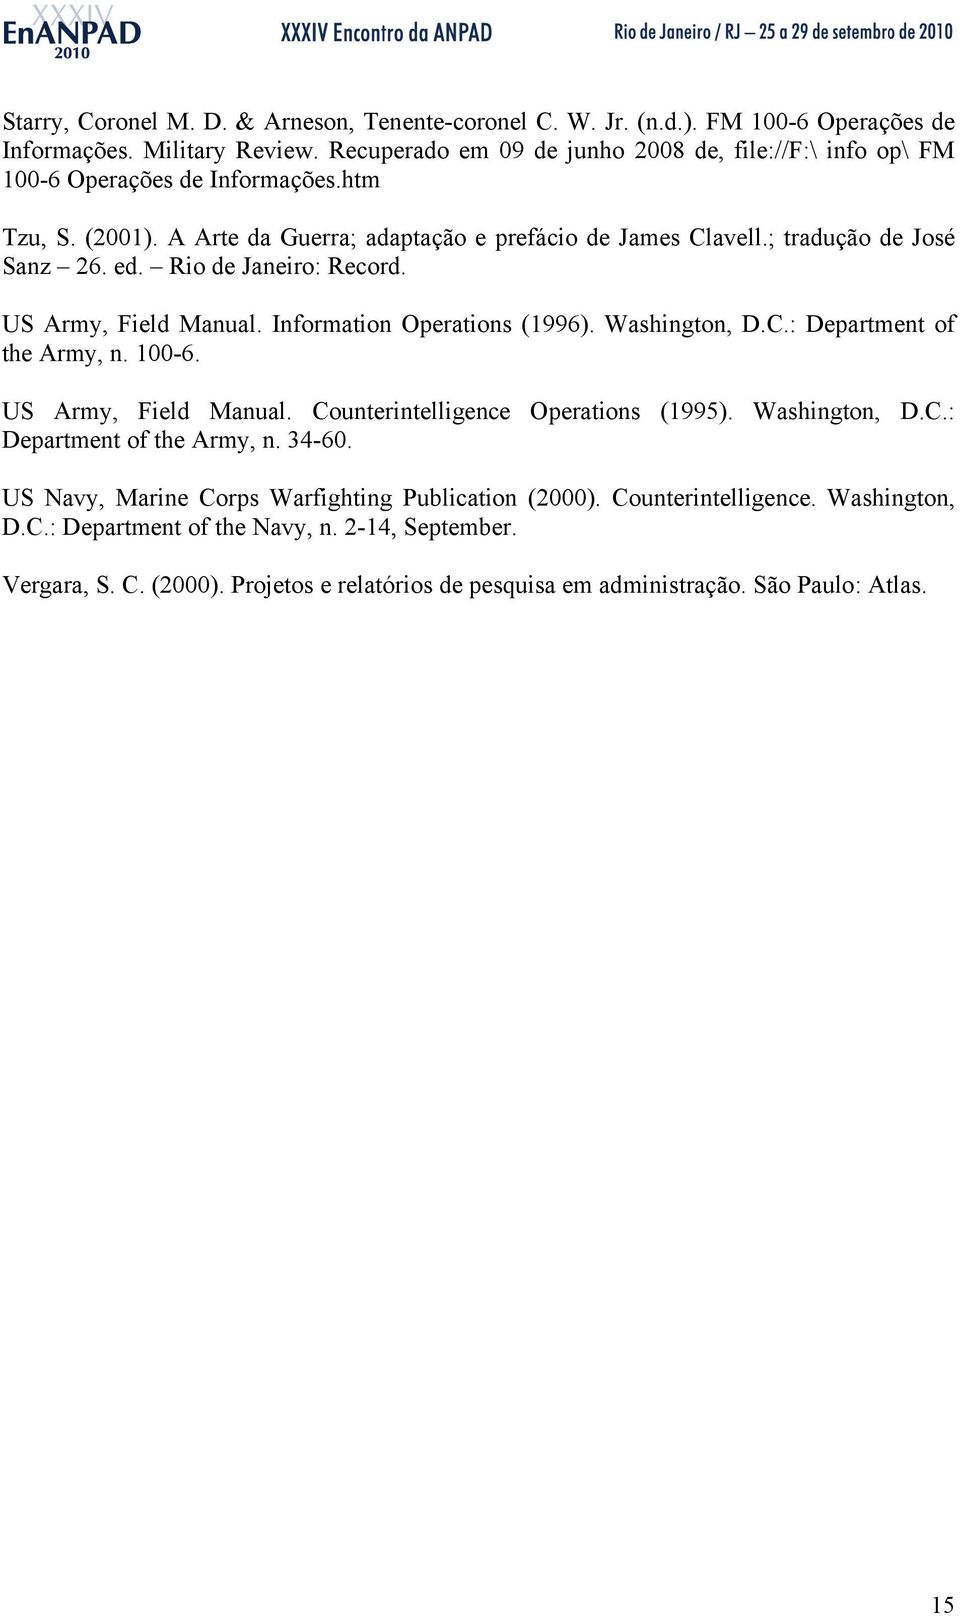 Rio de Janeiro: Record. US Army, Field Manual. Information Operations (1996). Washington, D.C.: Department of the Army, n. 100-6. US Army, Field Manual. Counterintelligence Operations (1995).